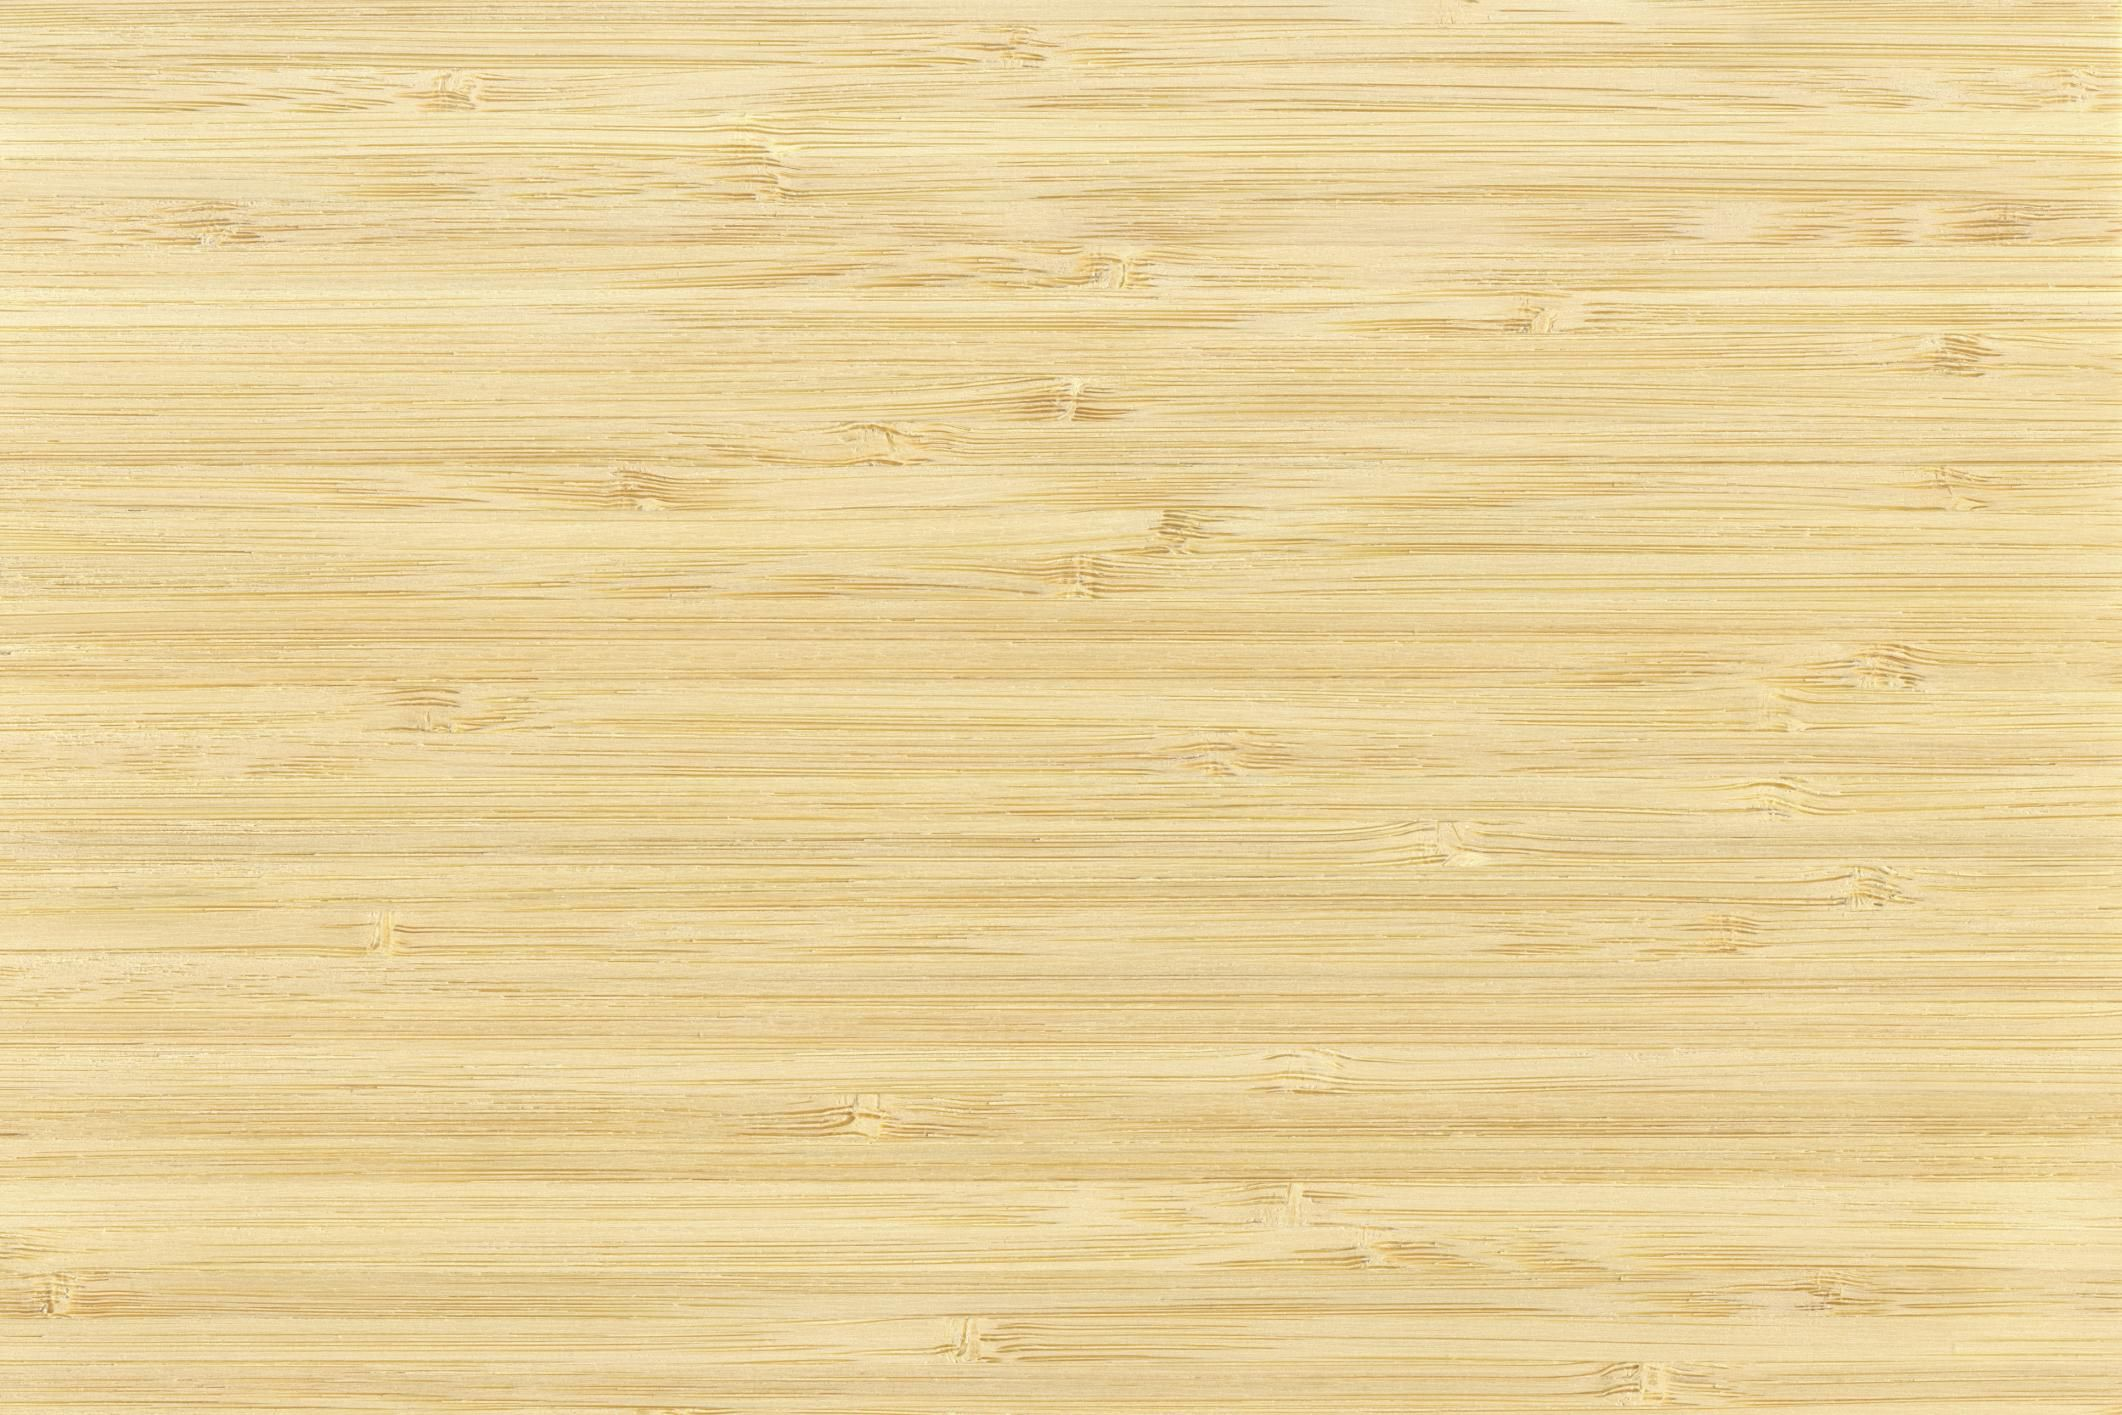 Solid Engineered and Strand Woven Bamboo Floors